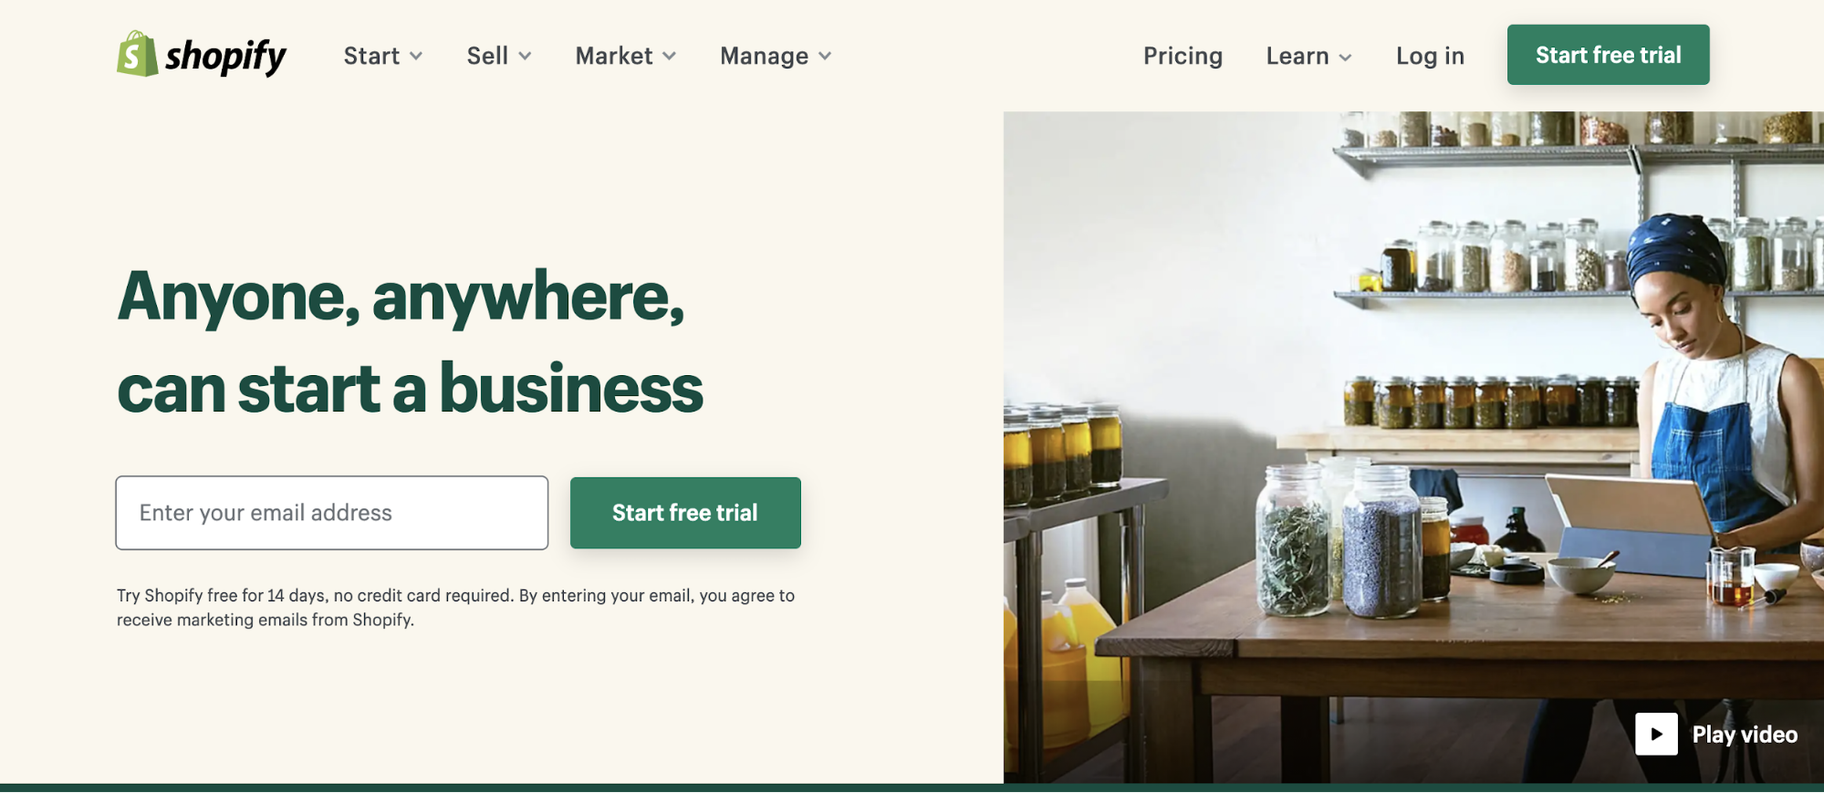 The Best Small Business Software Program: Shopify